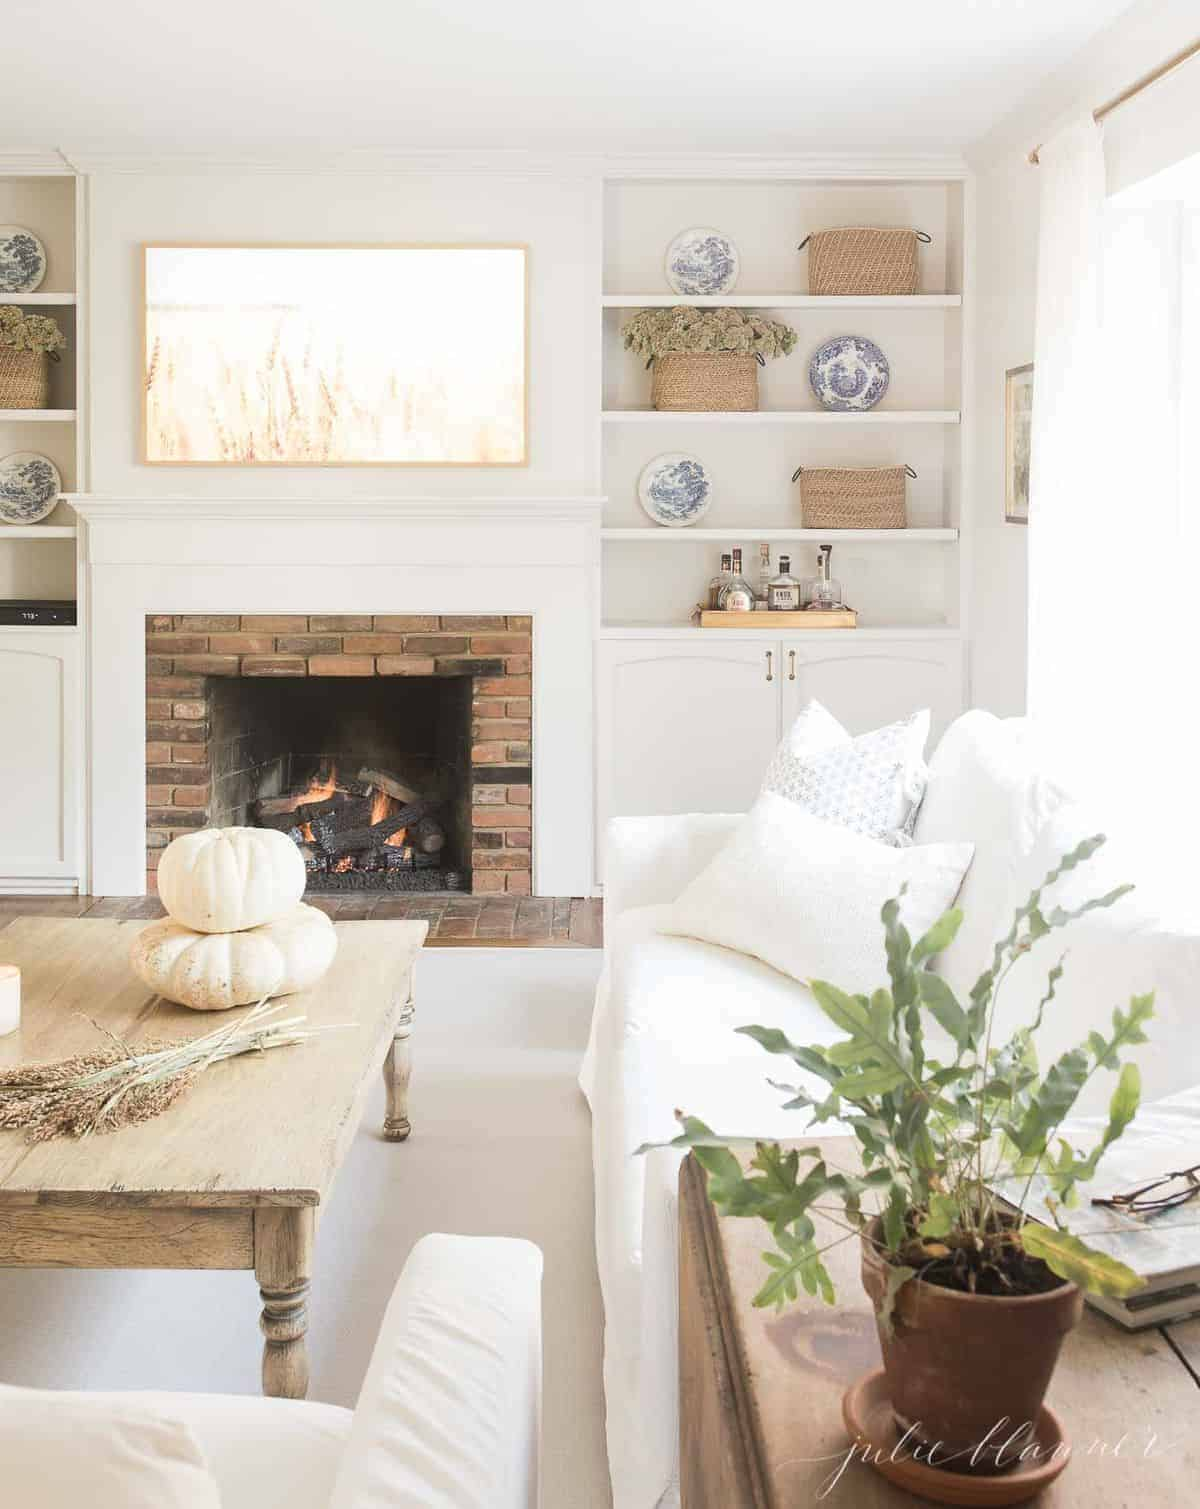 Pulled back view into a living room decorated for fall, pumpkins and wheat on coffee table and fireplace burning in background. #fallharvestdecor